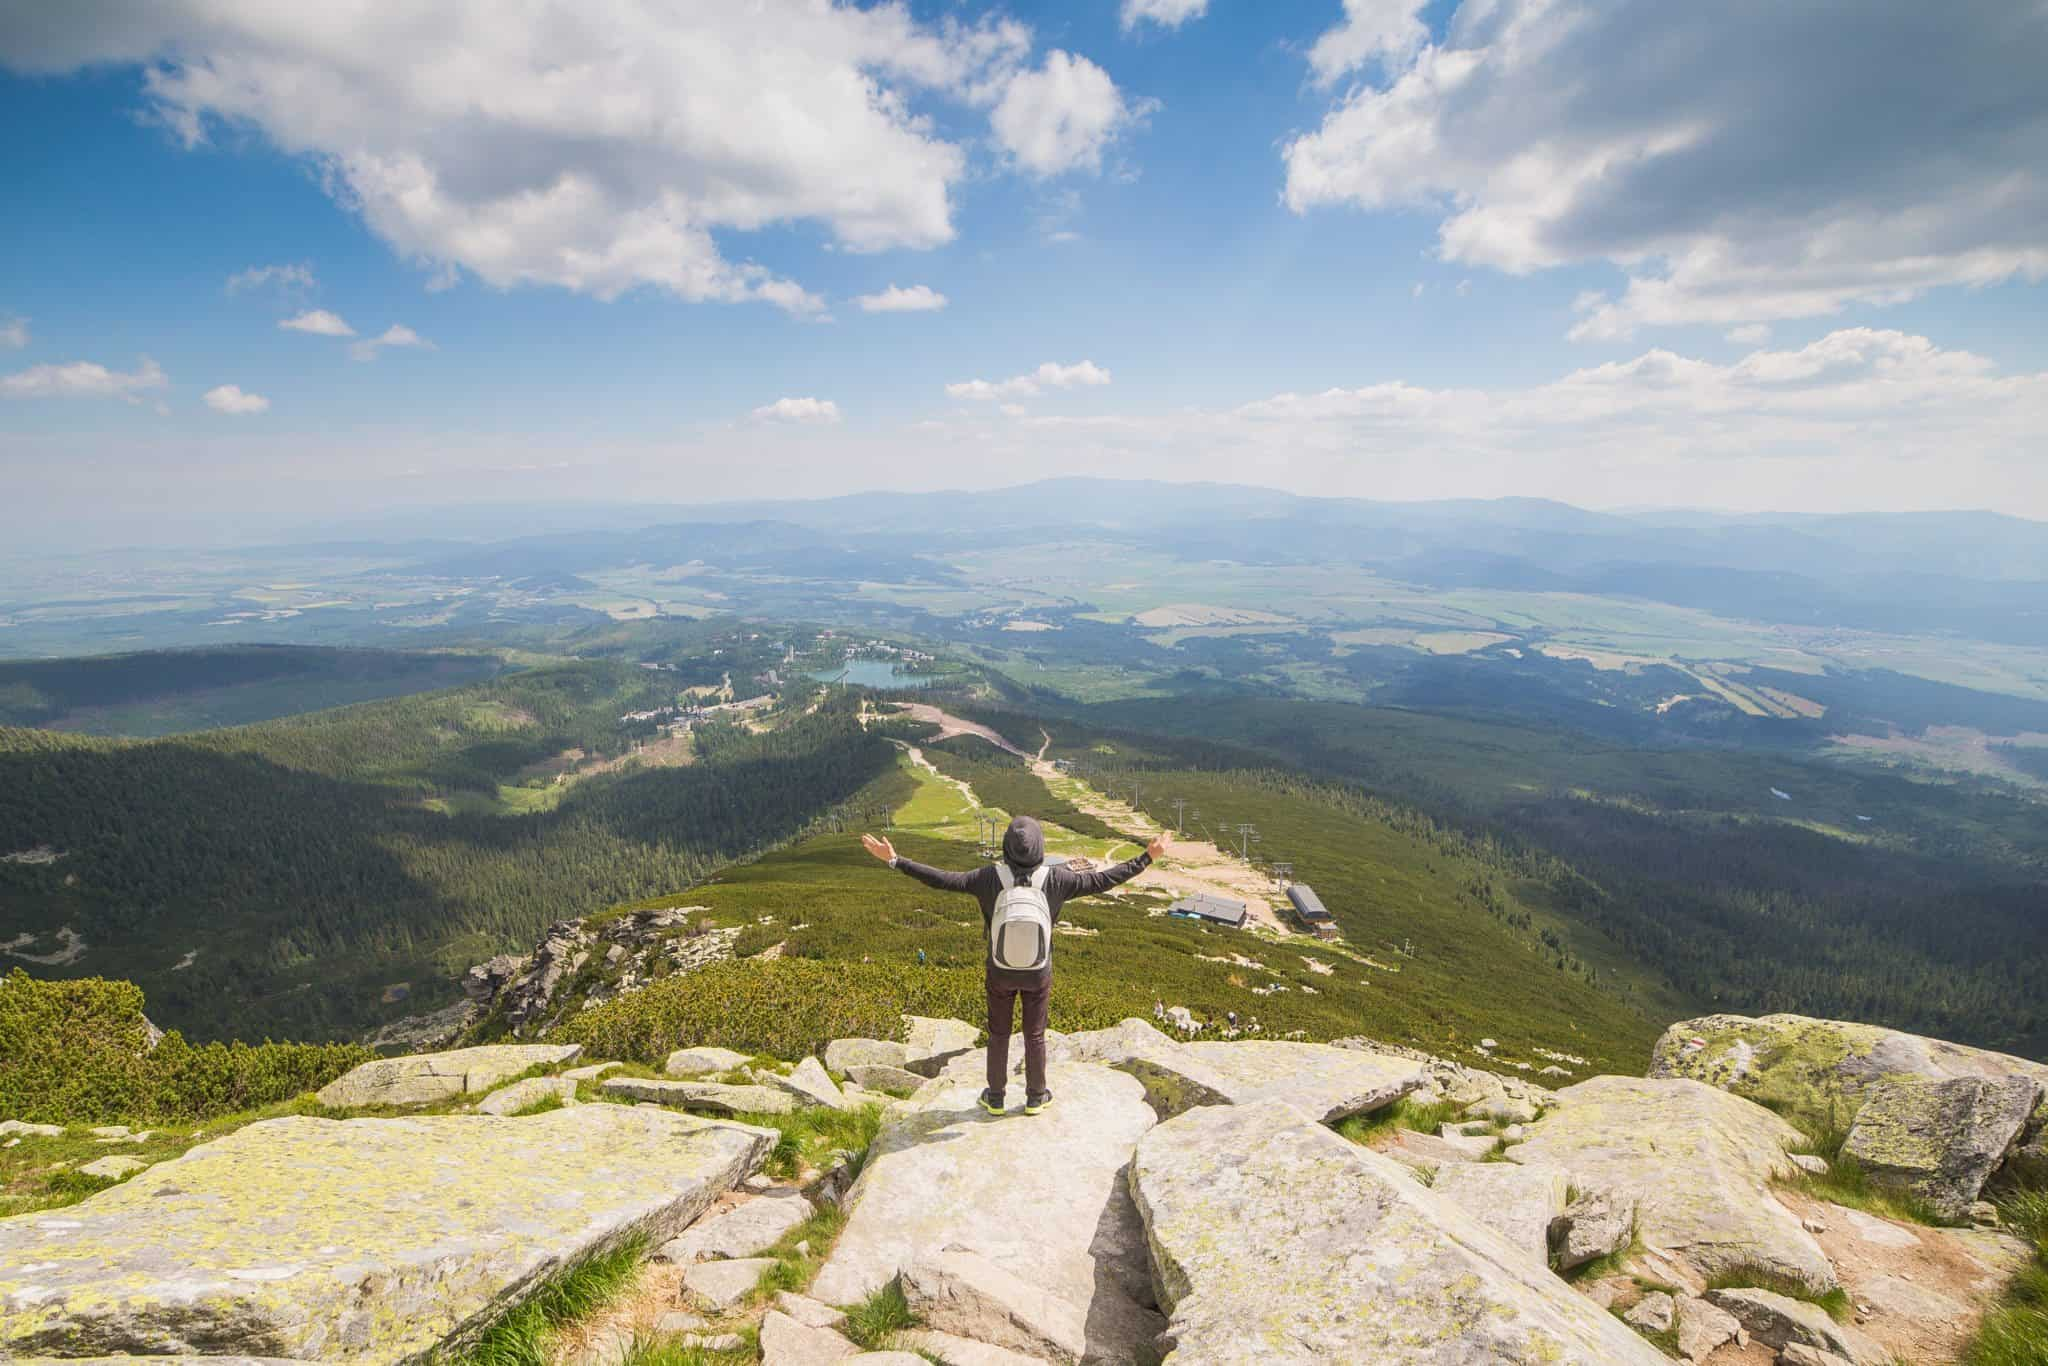 Picture of a man on the top of a hill embracing the world. An illustration in an article about finding the right marketing path.